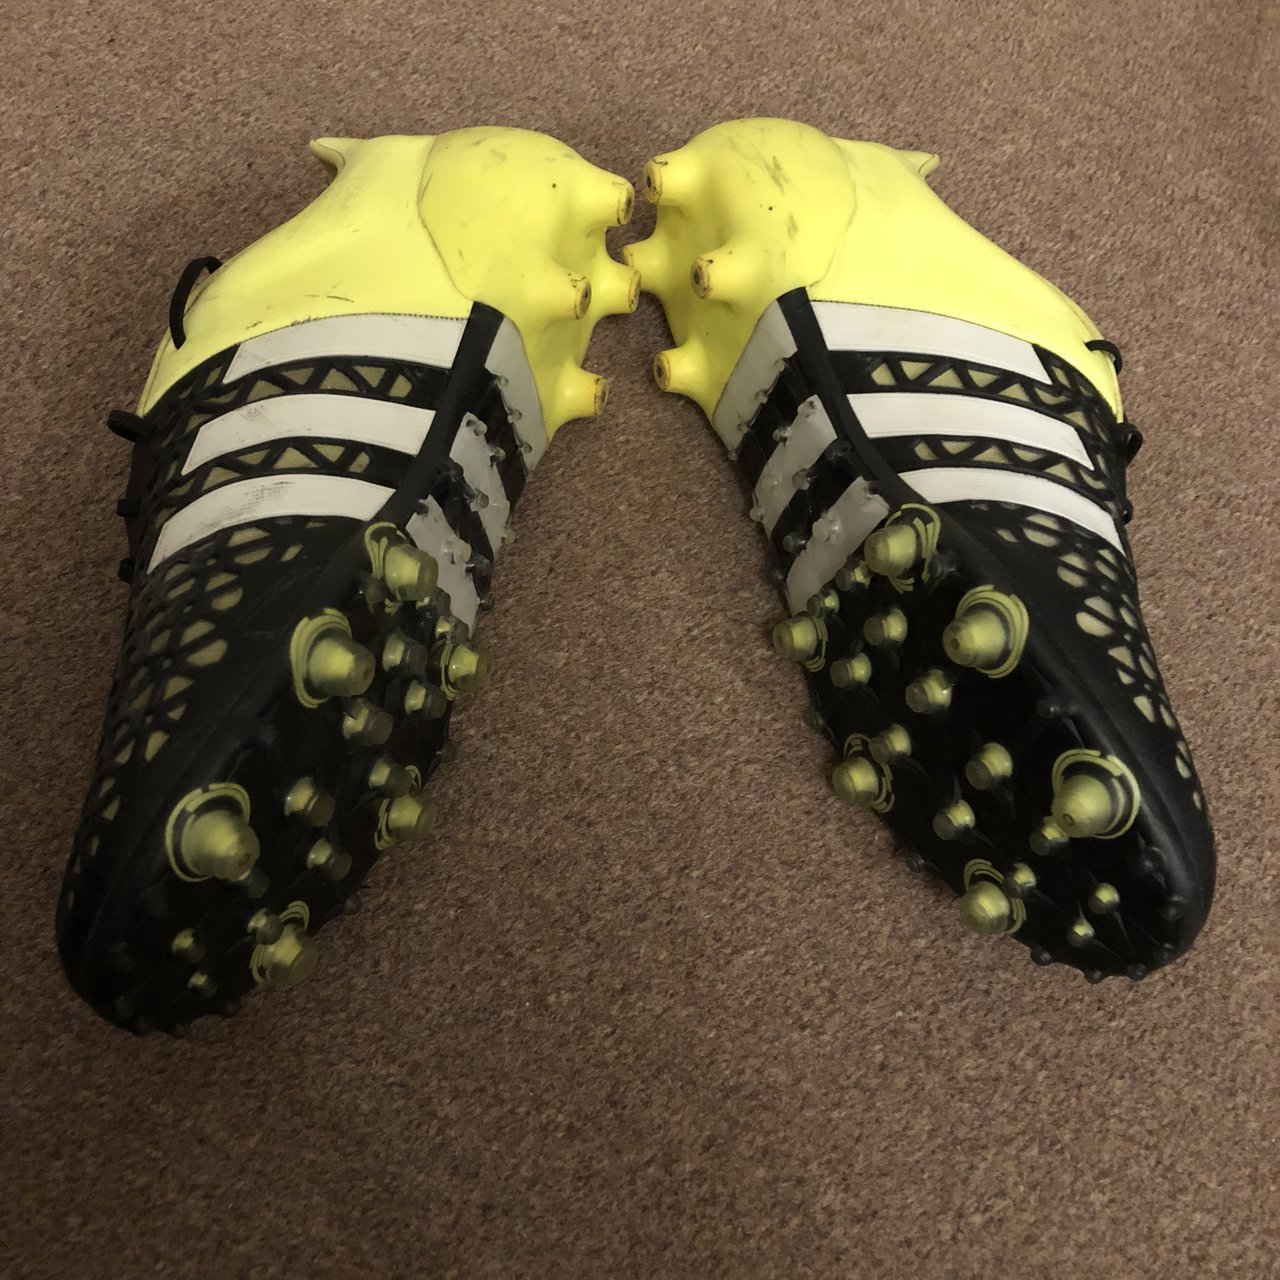 Adidas ACE 15.1 FG   AG football boots in Yellow   - 9.5 but - Depop dc5831c4d